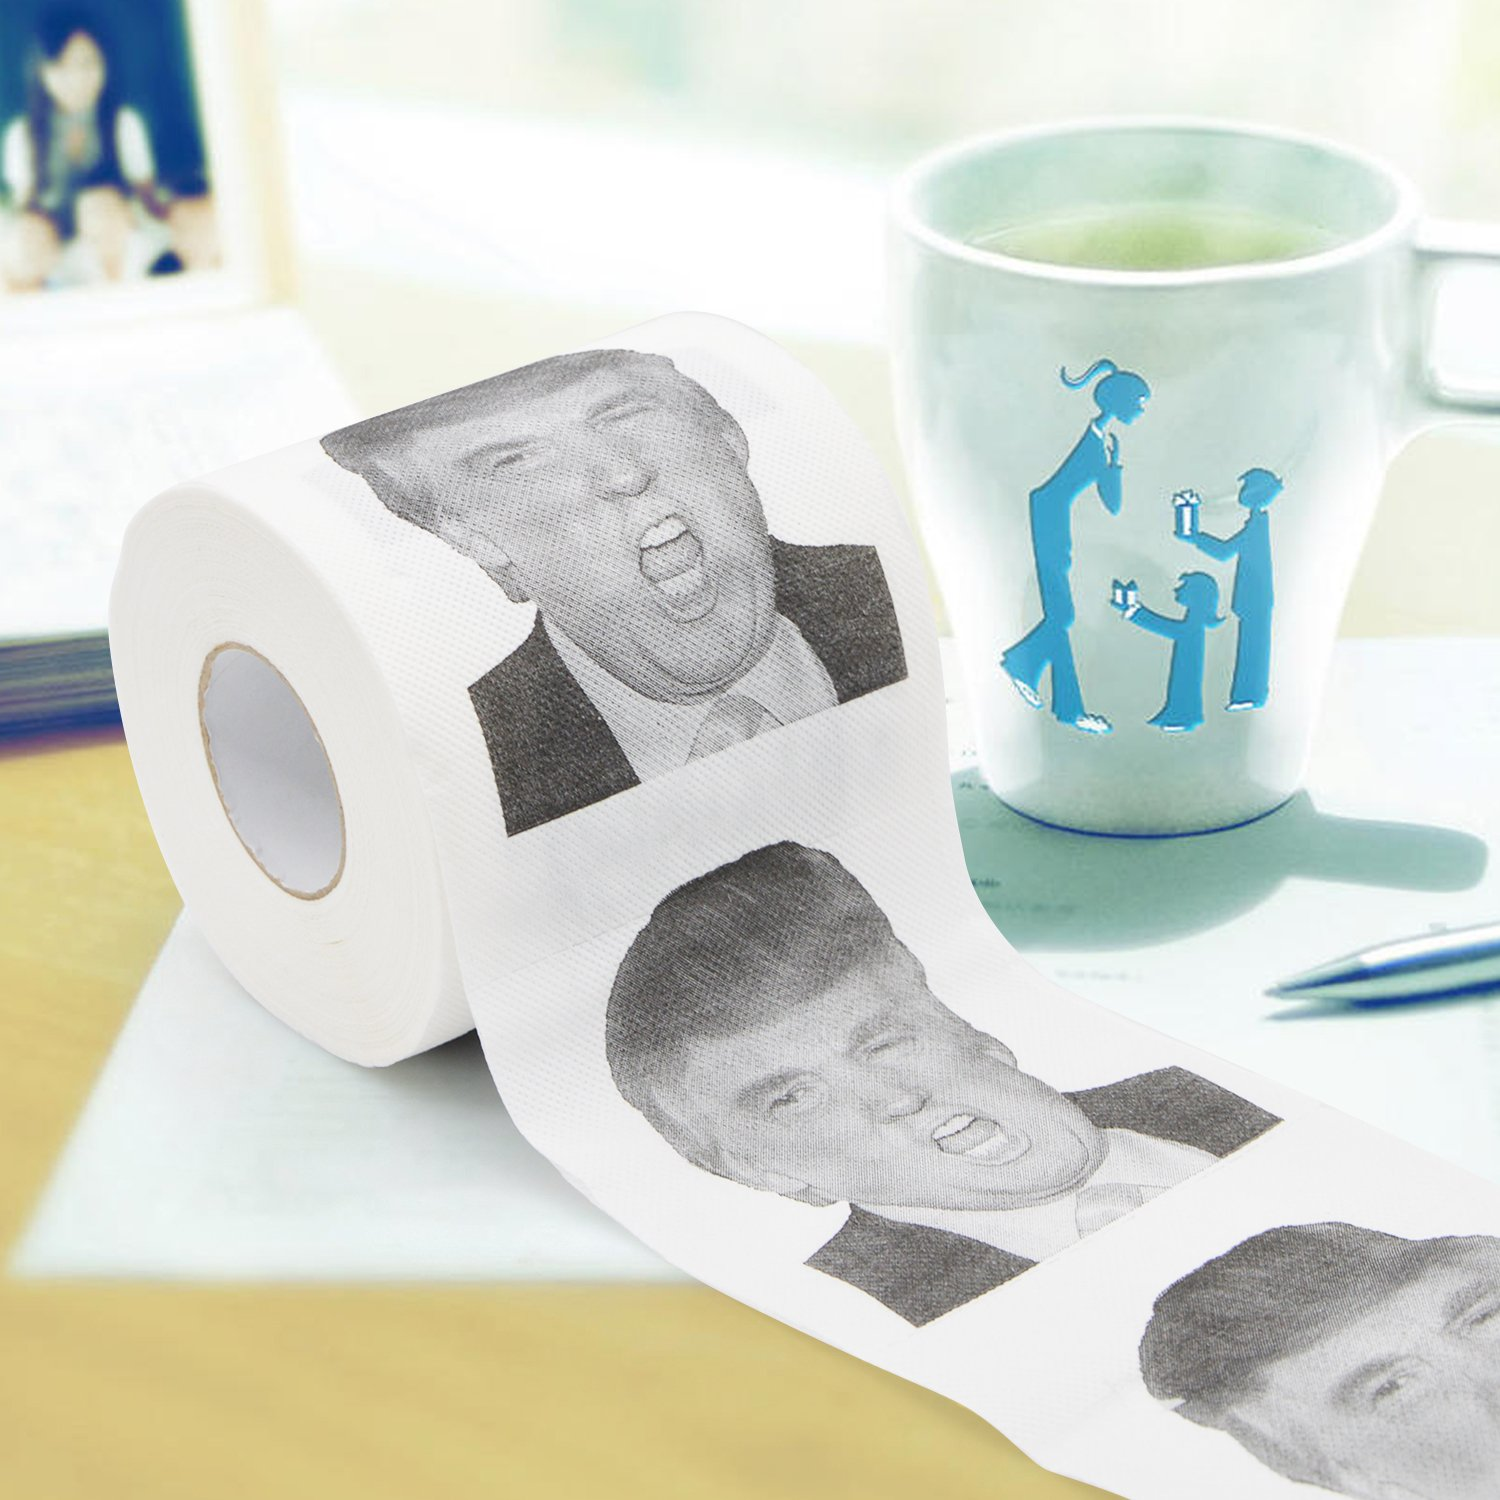 0294280c1c4 Amazon.com: Flantor Trump Novelty Toilet Paper / Stocking Stuffer / Perfect  for Democrats or Republicans Hilarious! Funny! Gag!